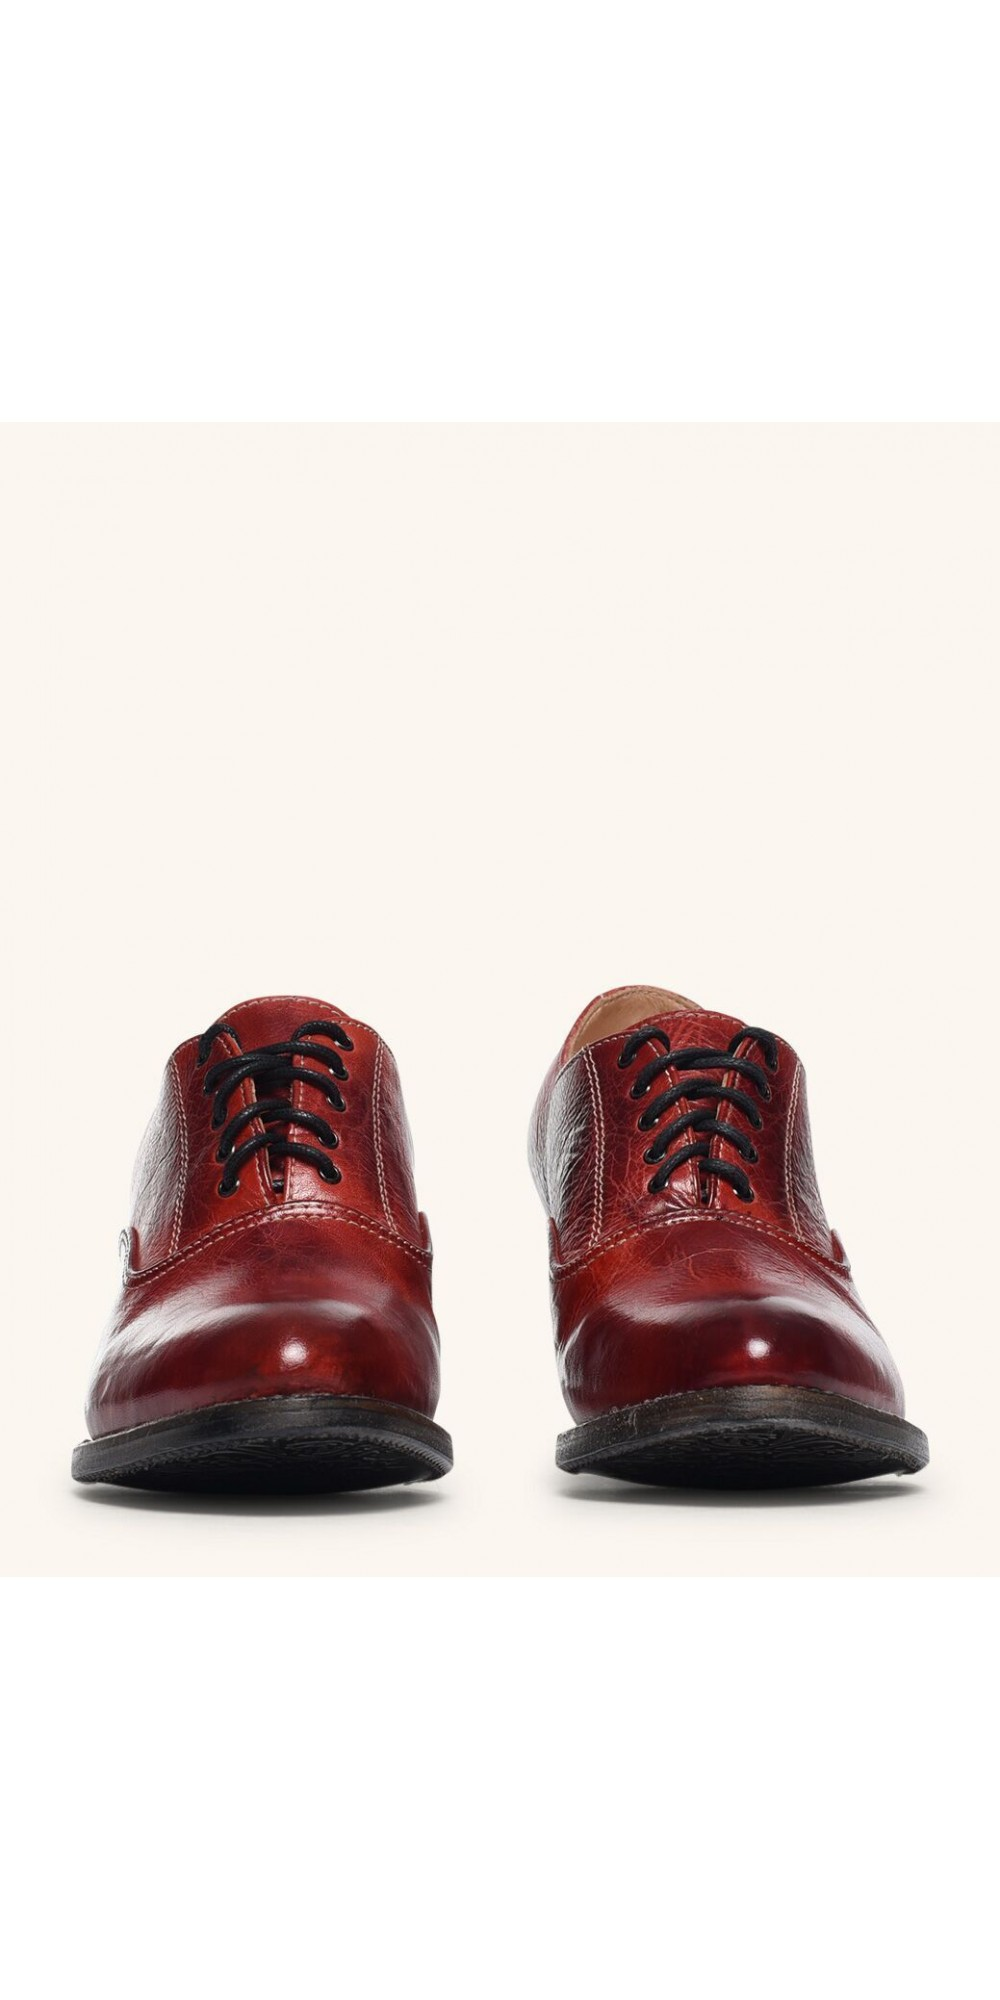 Victorian Style Leather Lace Up Shoes In Red Rustic